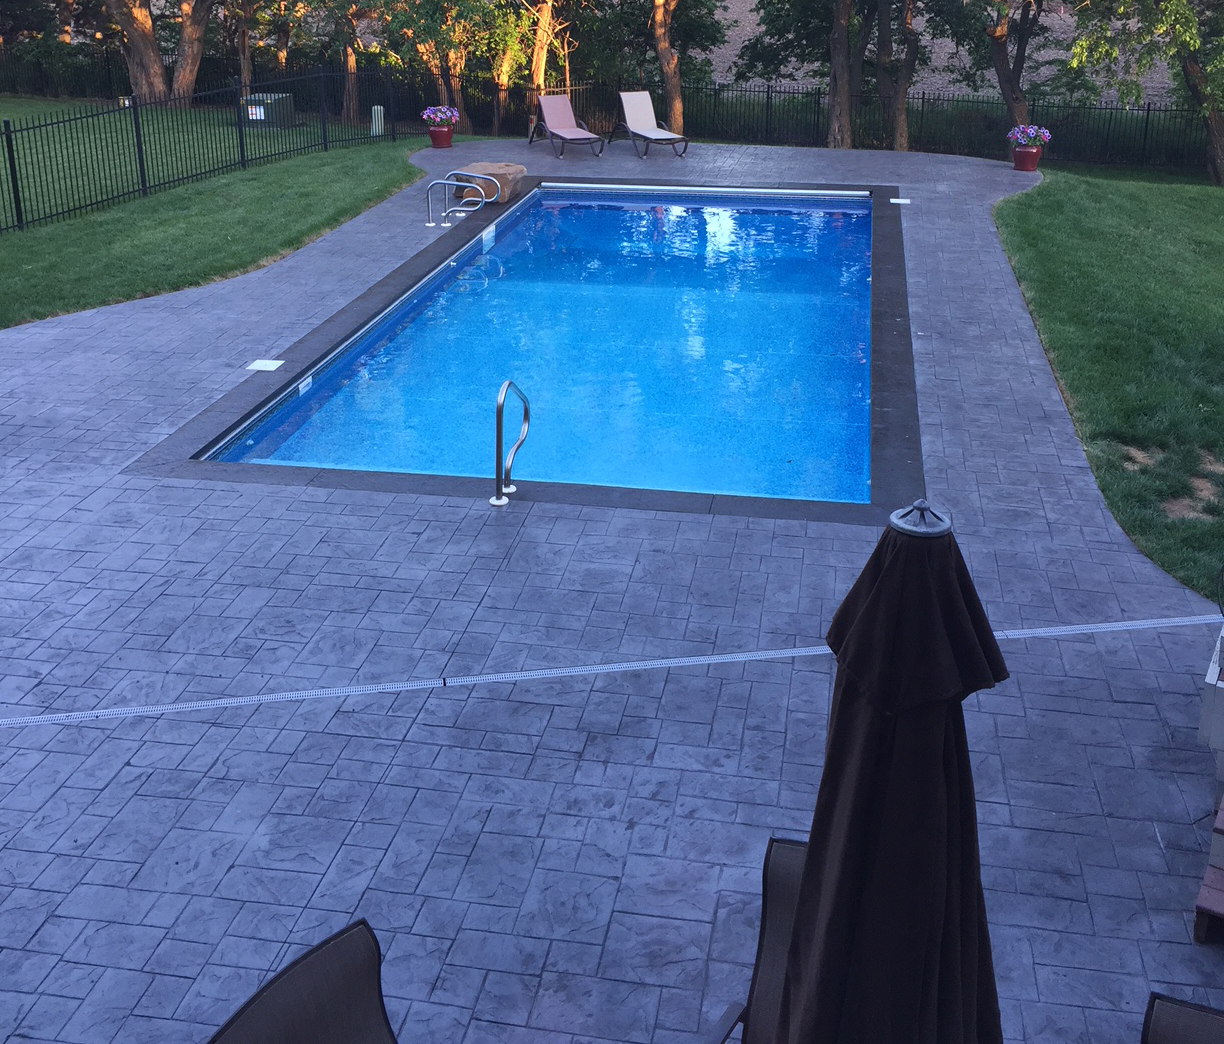 Pool Decks | E & J Concrete and Dirt Work